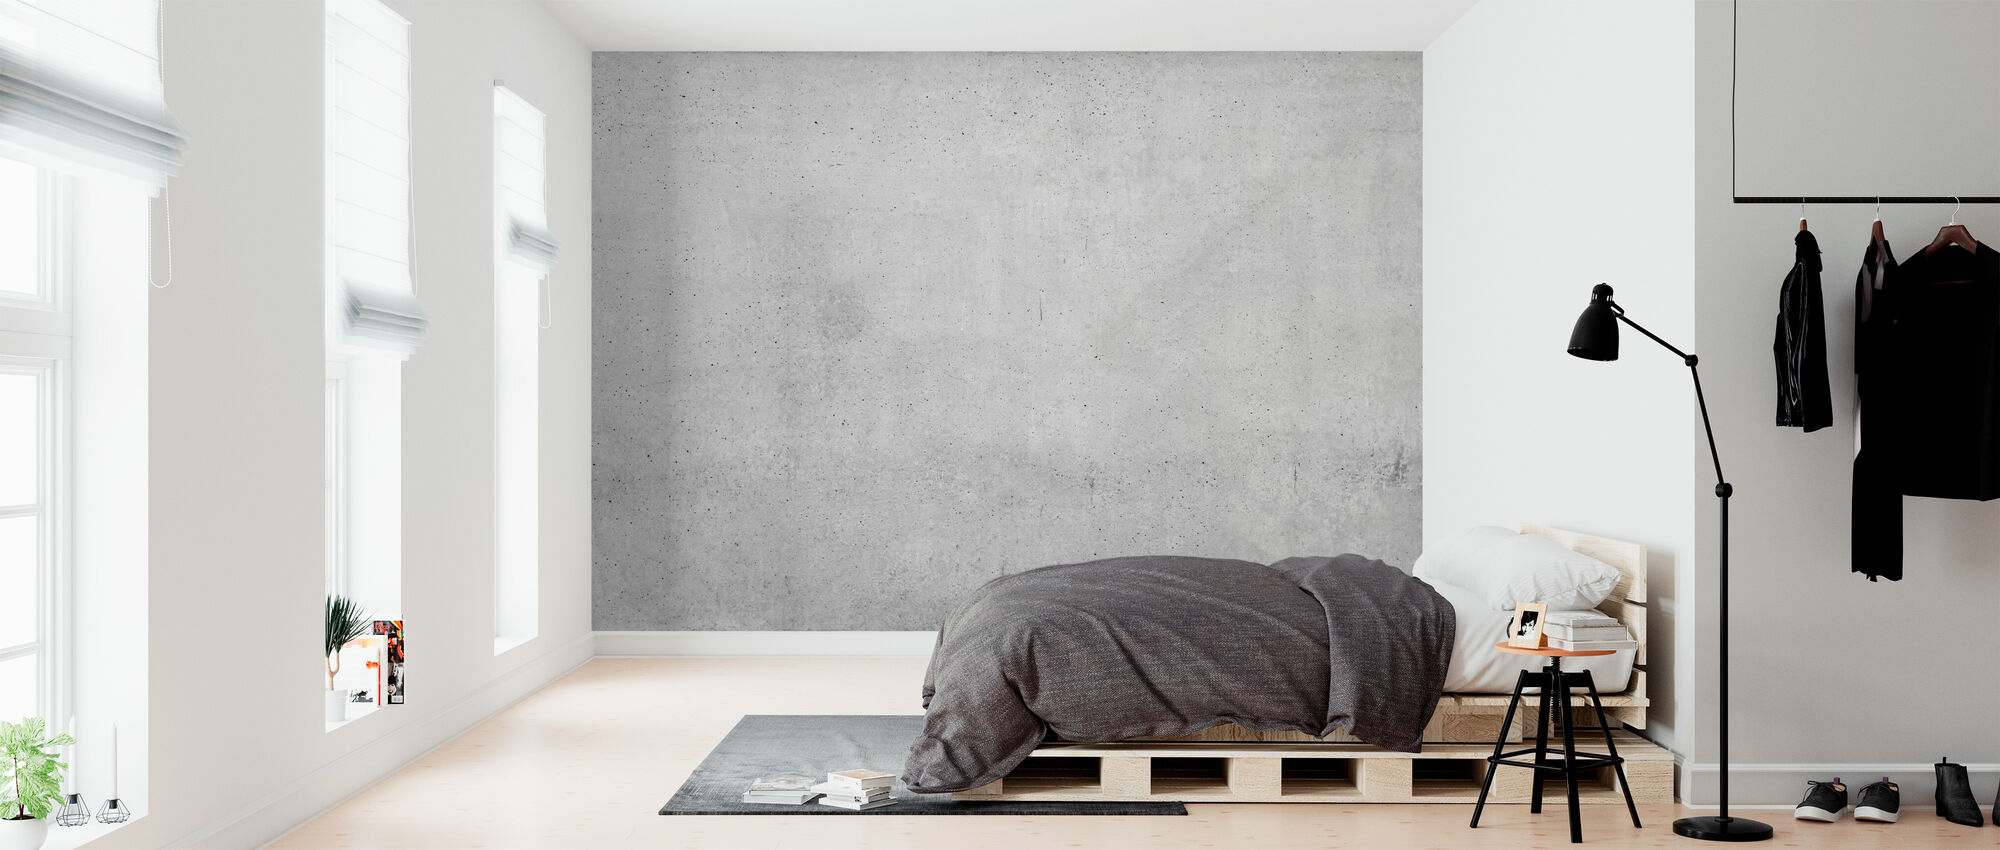 Exposed Concrete Wall - Wallpaper - Bedroom